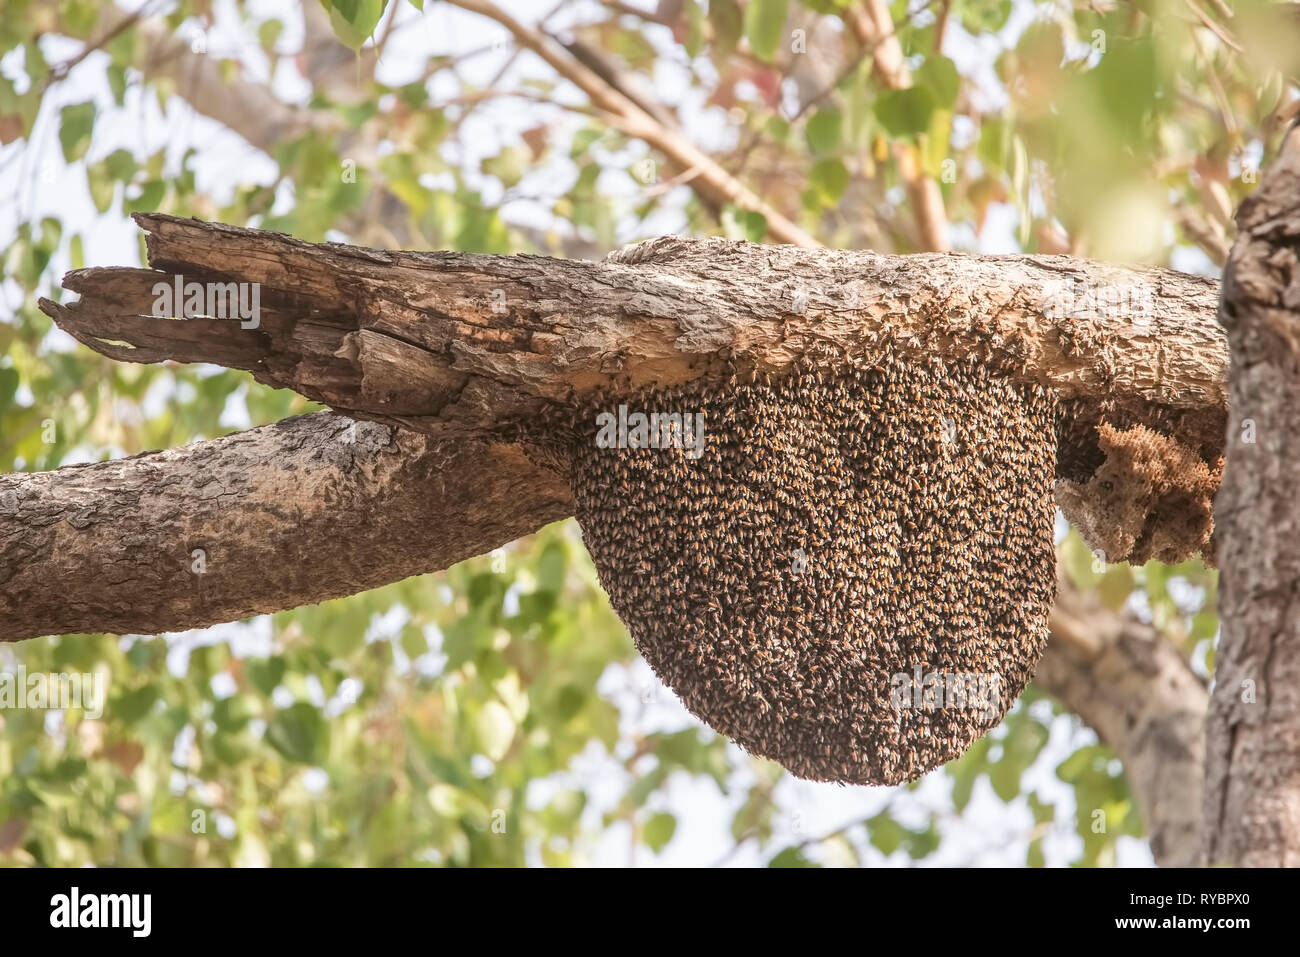 Beehive,honey bee pupas,coming out, from metamorphosis,on hard wood,trees,Tadoba National Park,in early summer ,month,Maharastra,India. - Stock Image